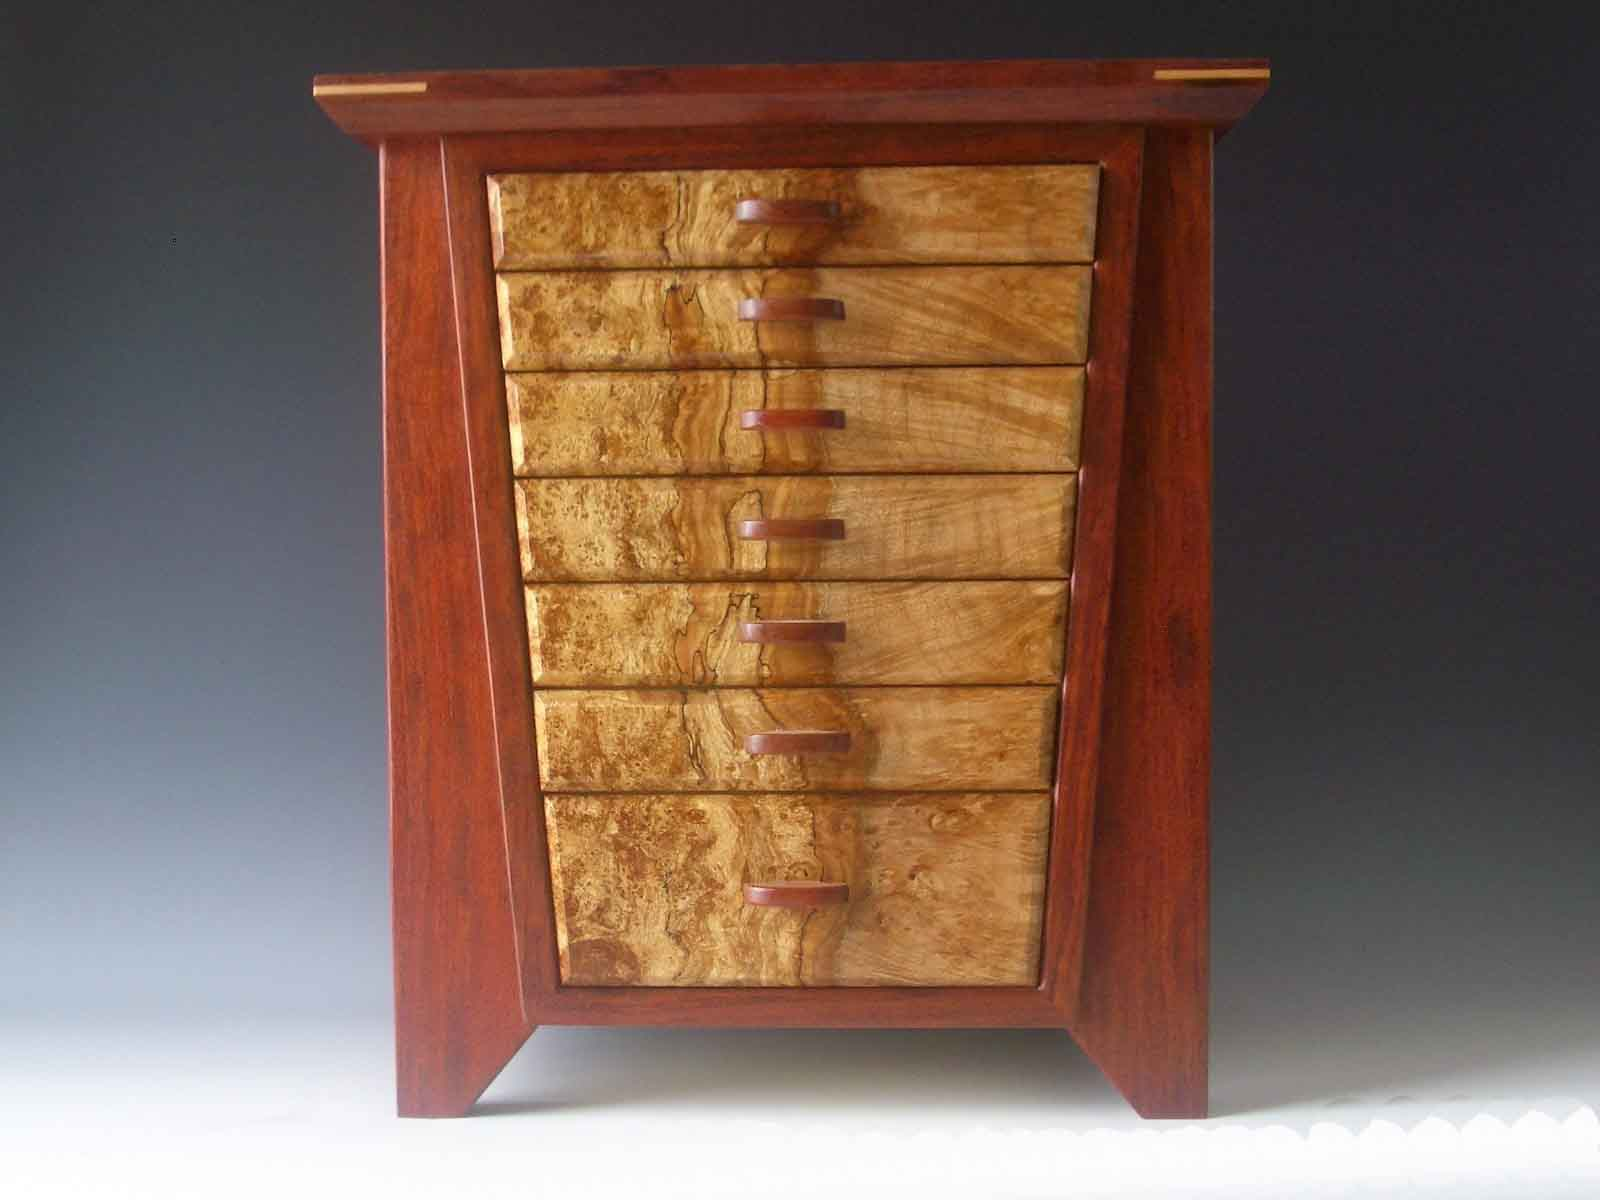 One of my larger handmade jewelry boxes, the Angle, made of bubinga wood from Africa.